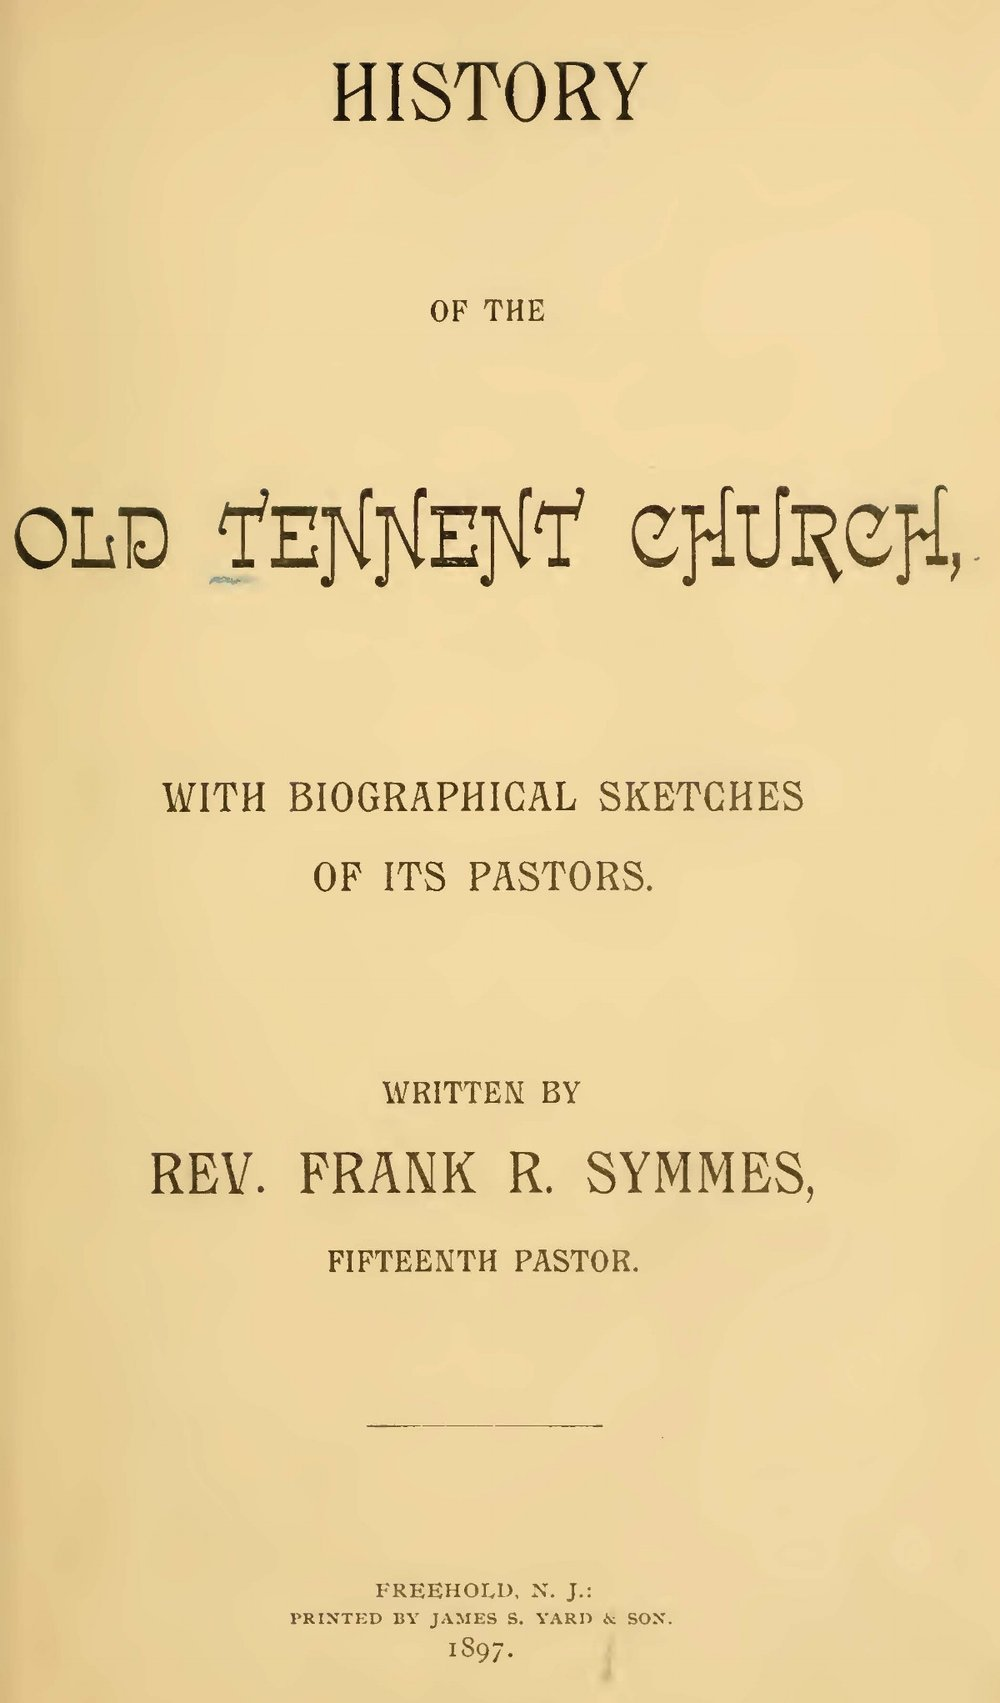 Symmes, Frank Rosebrook, History of the Old Tennent Church Title Page.jpg